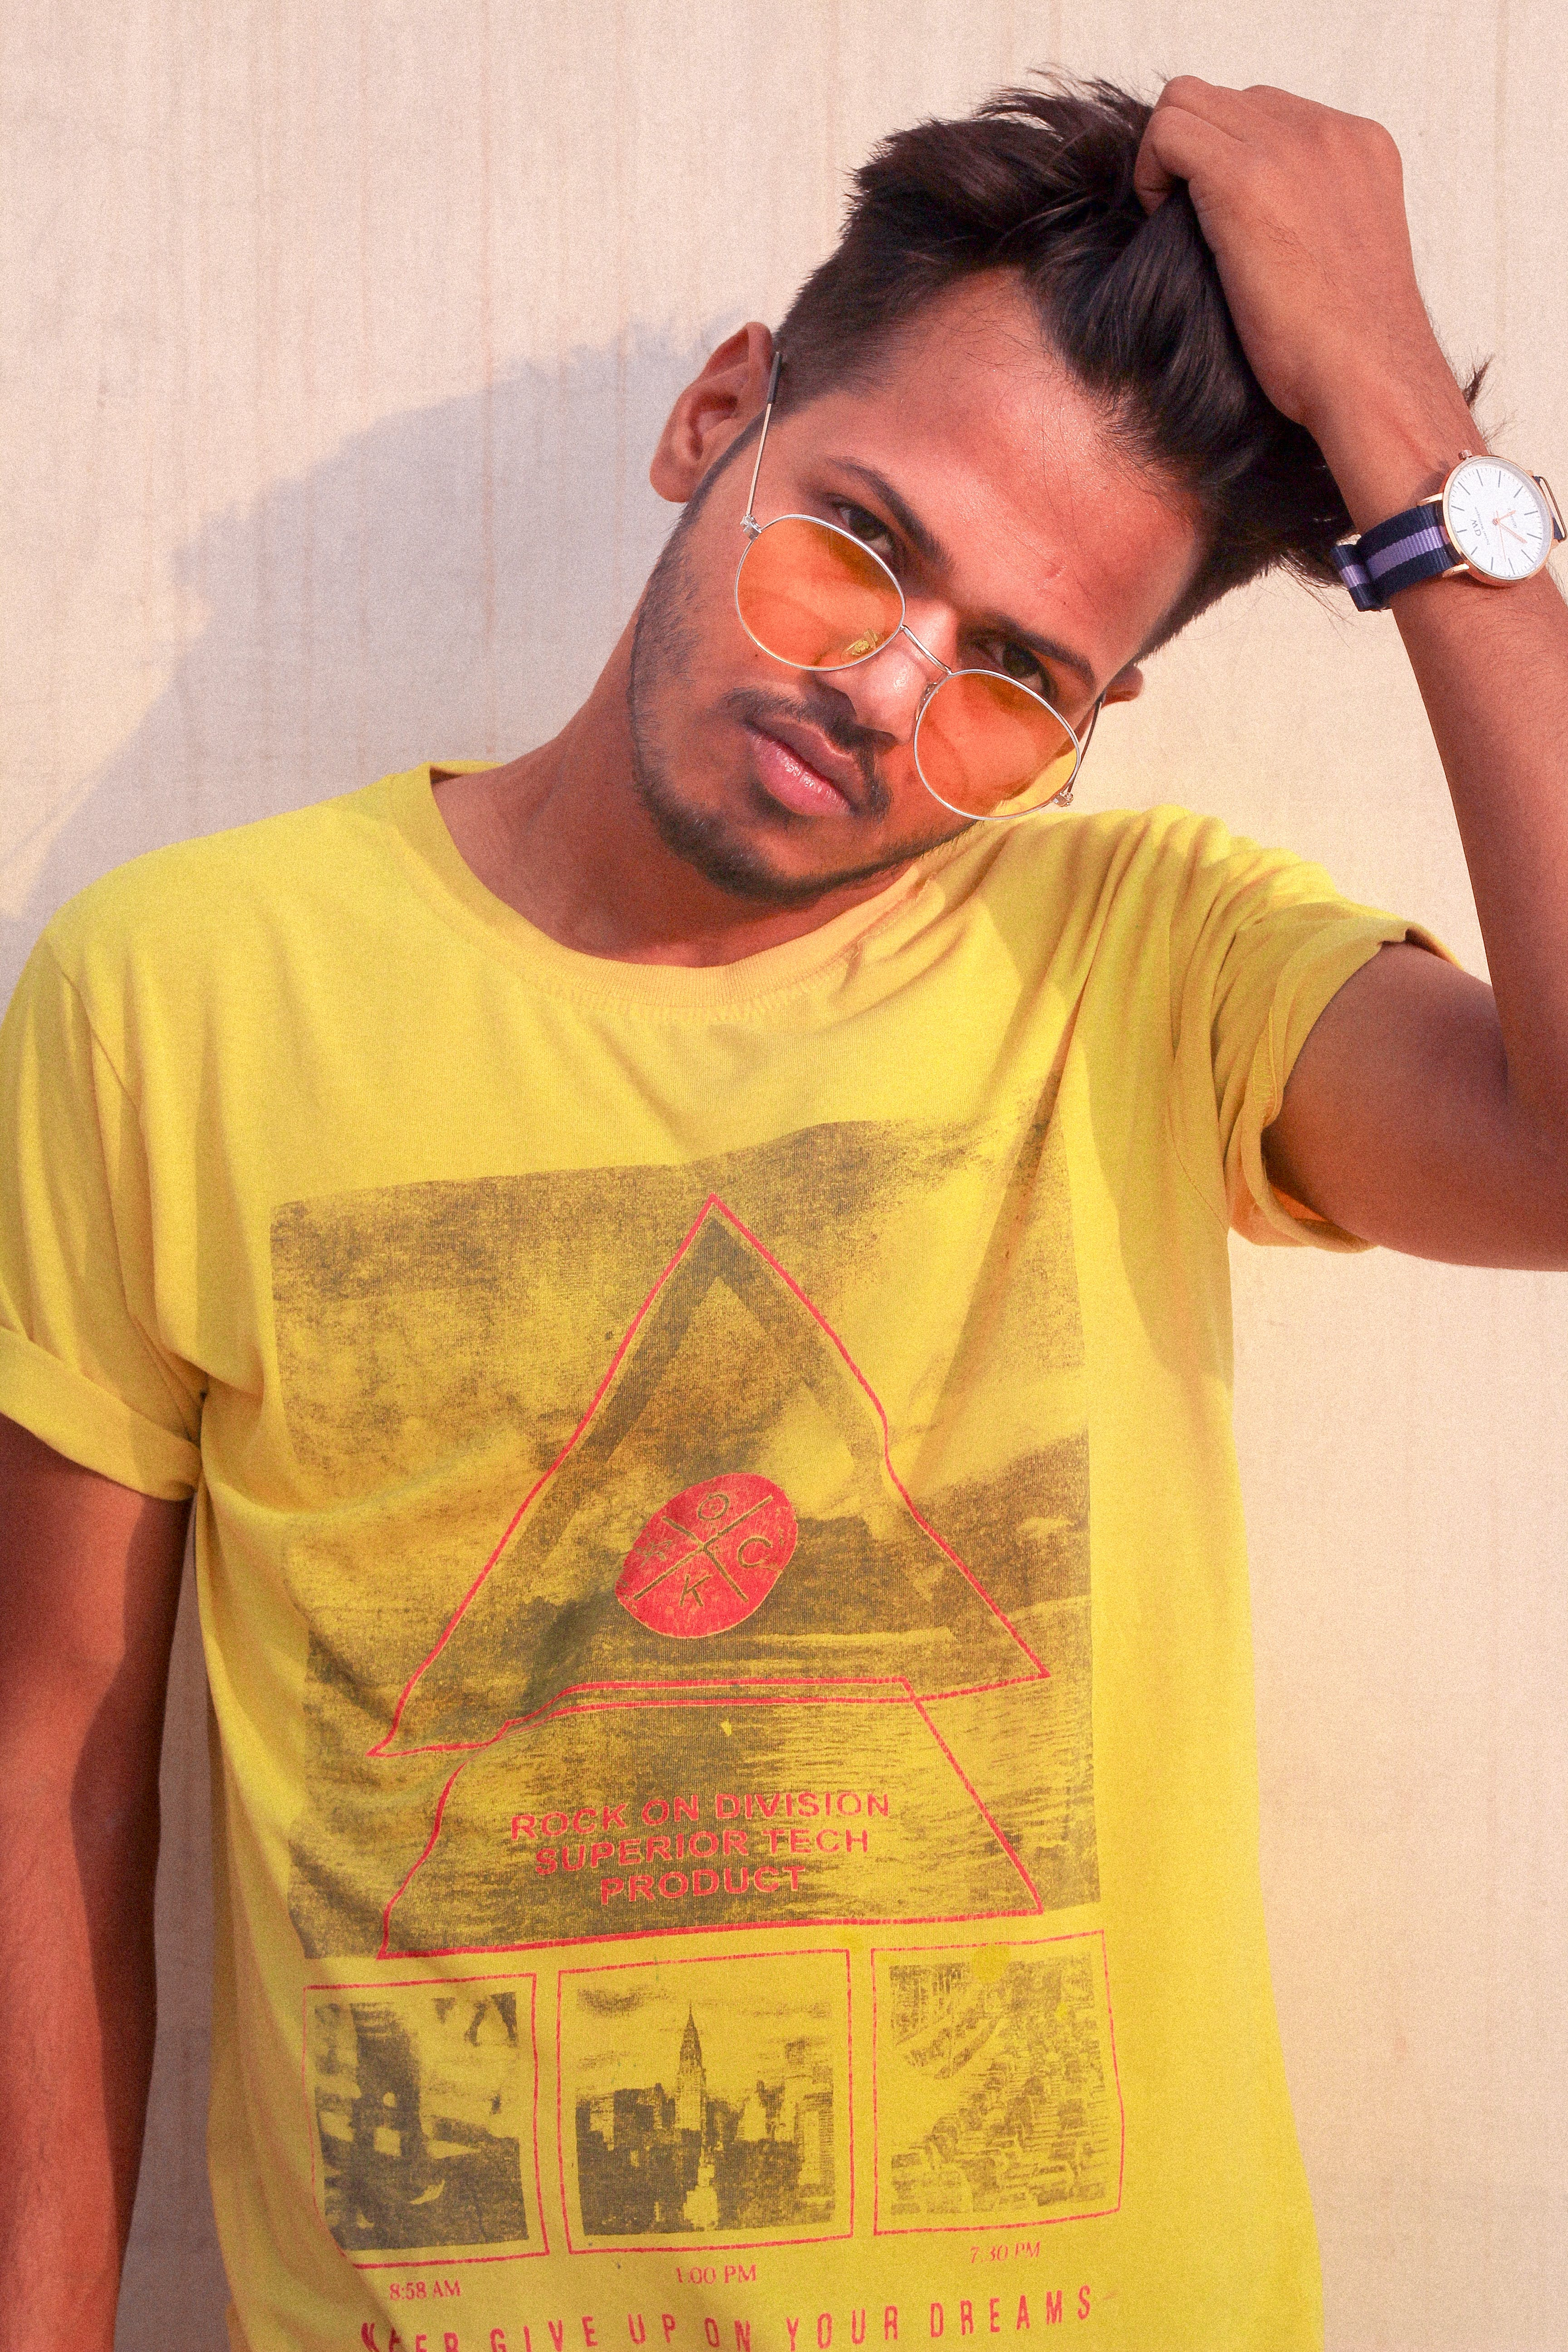 of guy, handsome, yellow